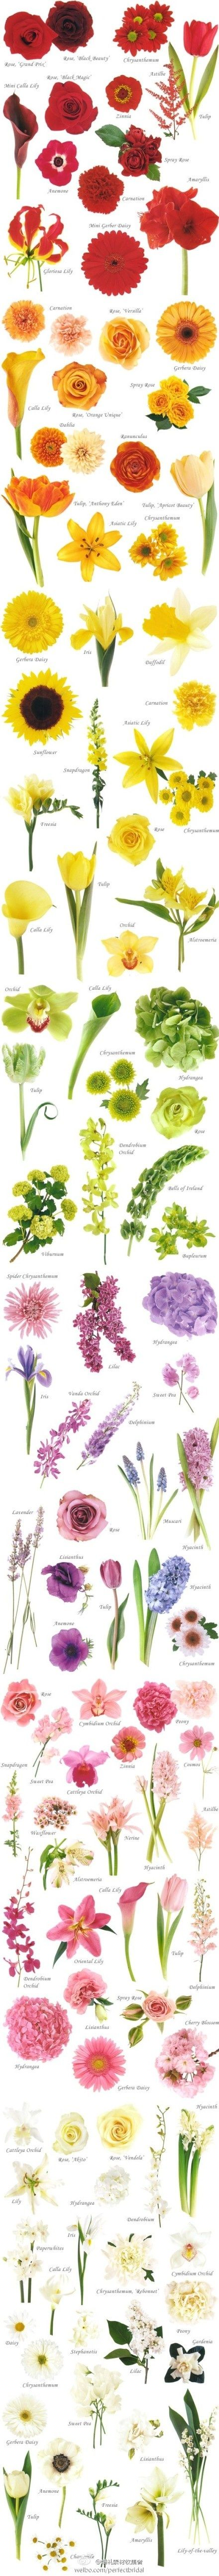 A diagram to help find your flower.: